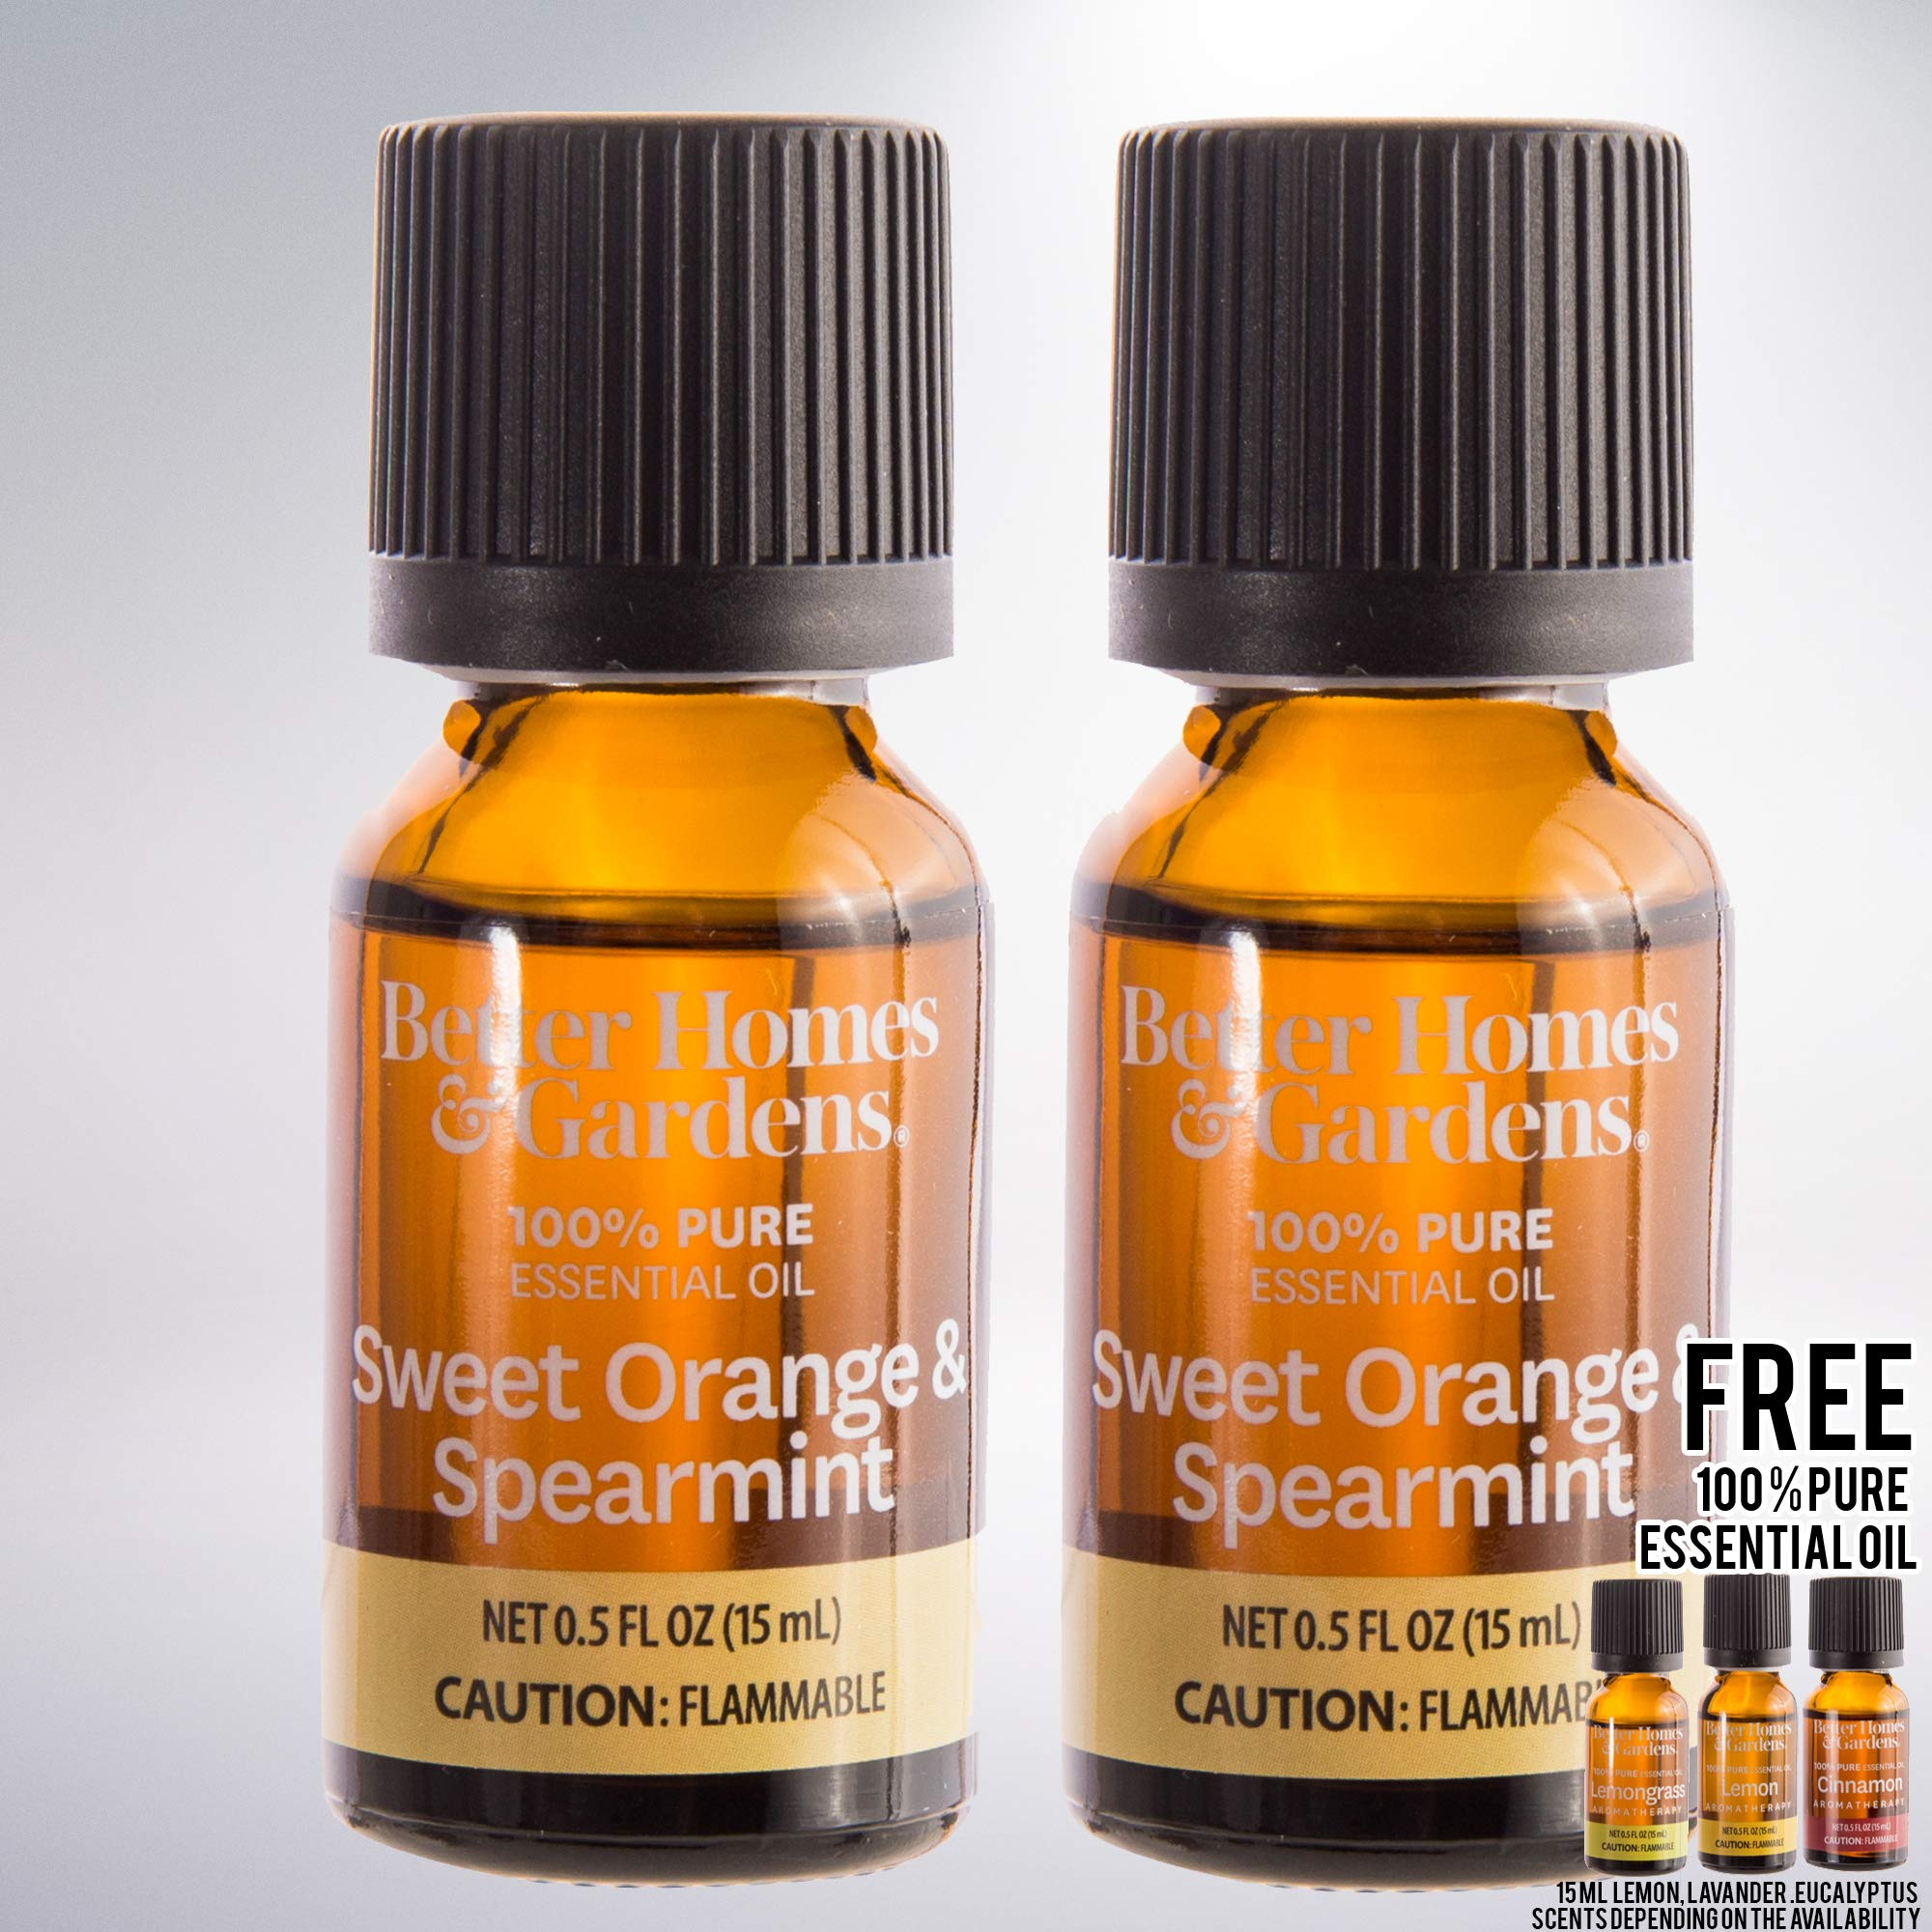 15 mL 100% Pure Essential Oil Set of 2 bundled with free 15 mL 100% Pure Essential Oil (Sweet Orange & Spearmint)